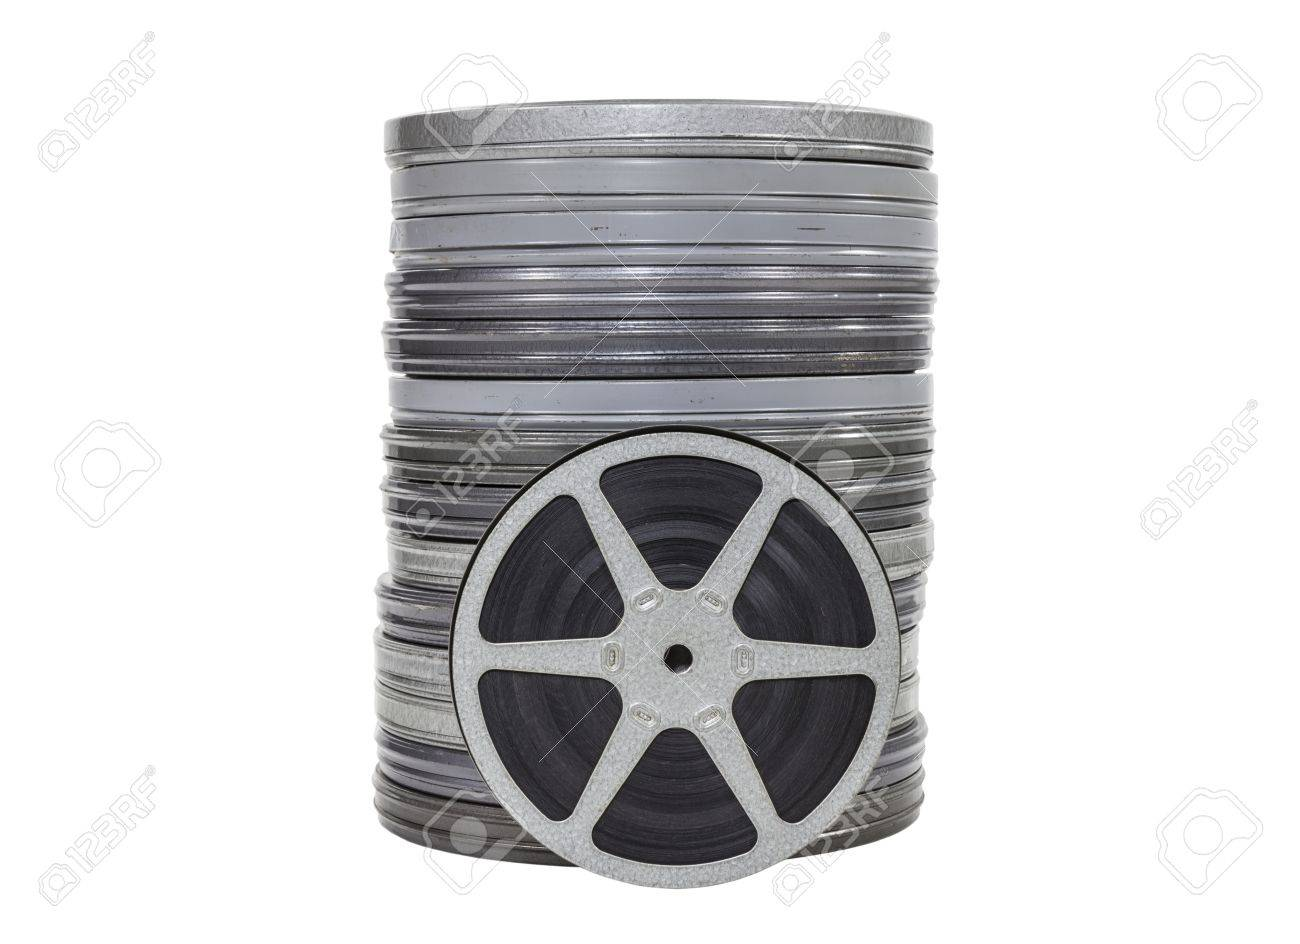 Vintage home movie film cans and reel isolated Stock Photo - 21892633